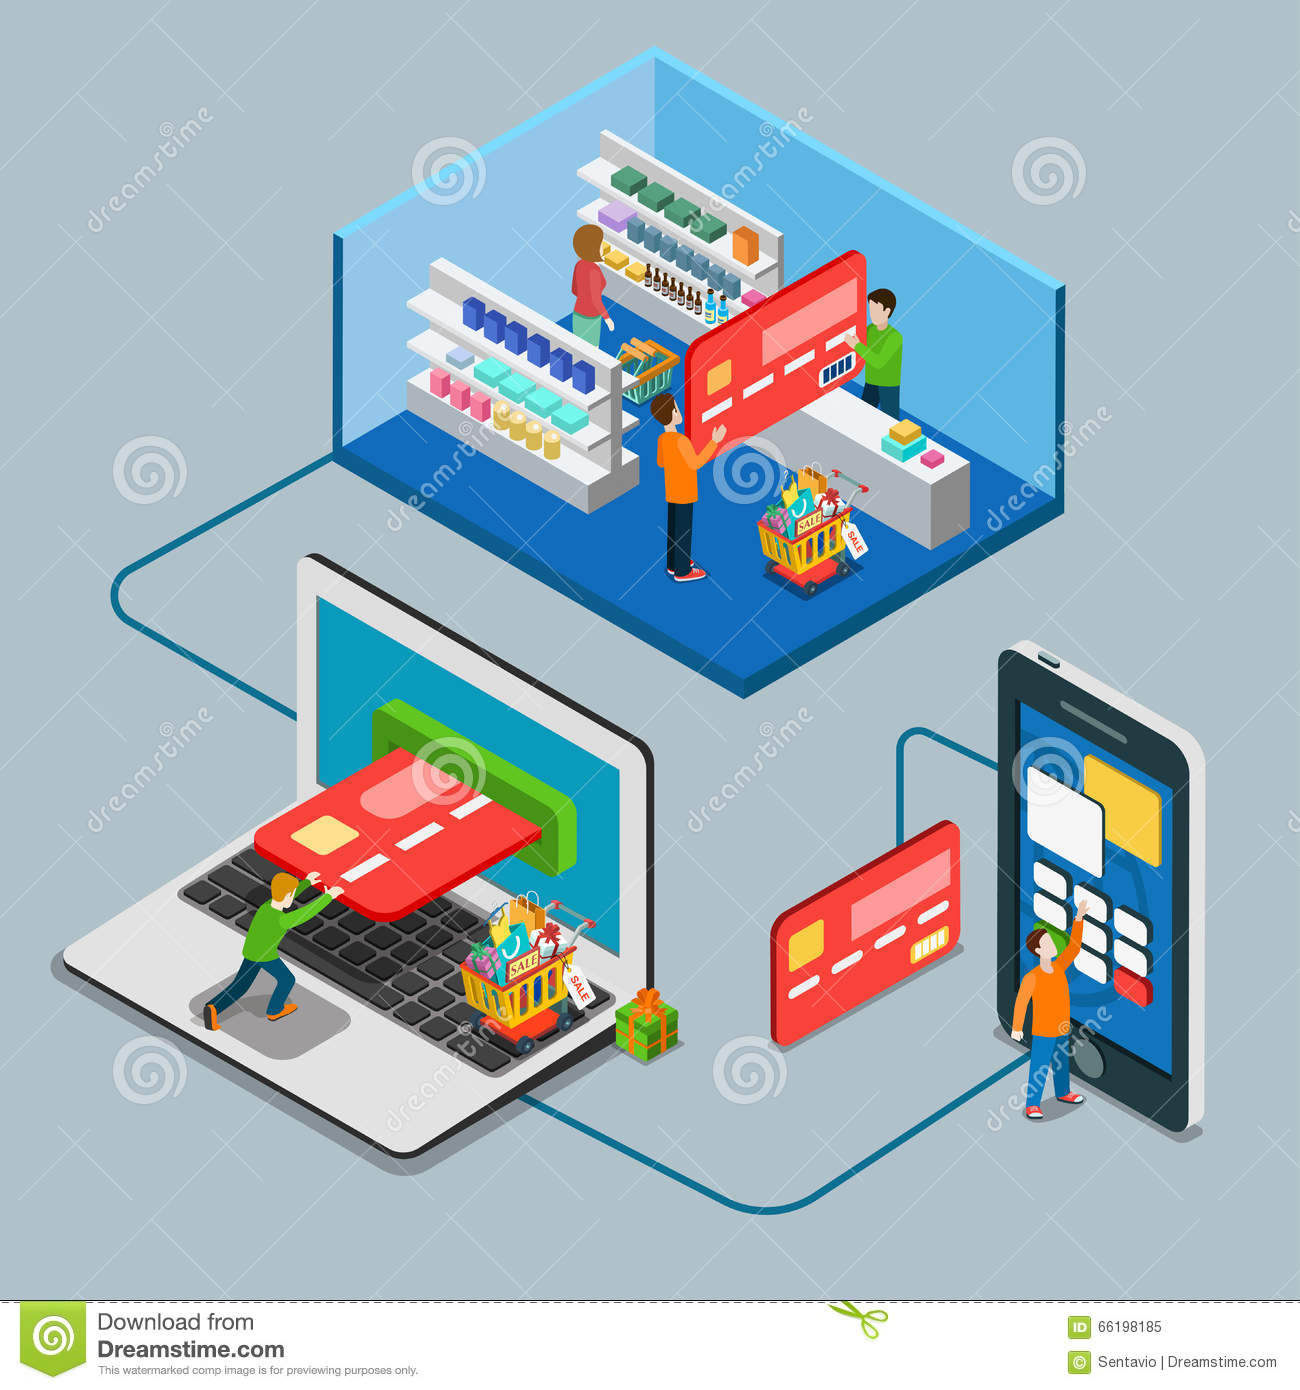 Online Shopping Mode Of Payment Flat Isometric Mobile Online Payment Concept Web